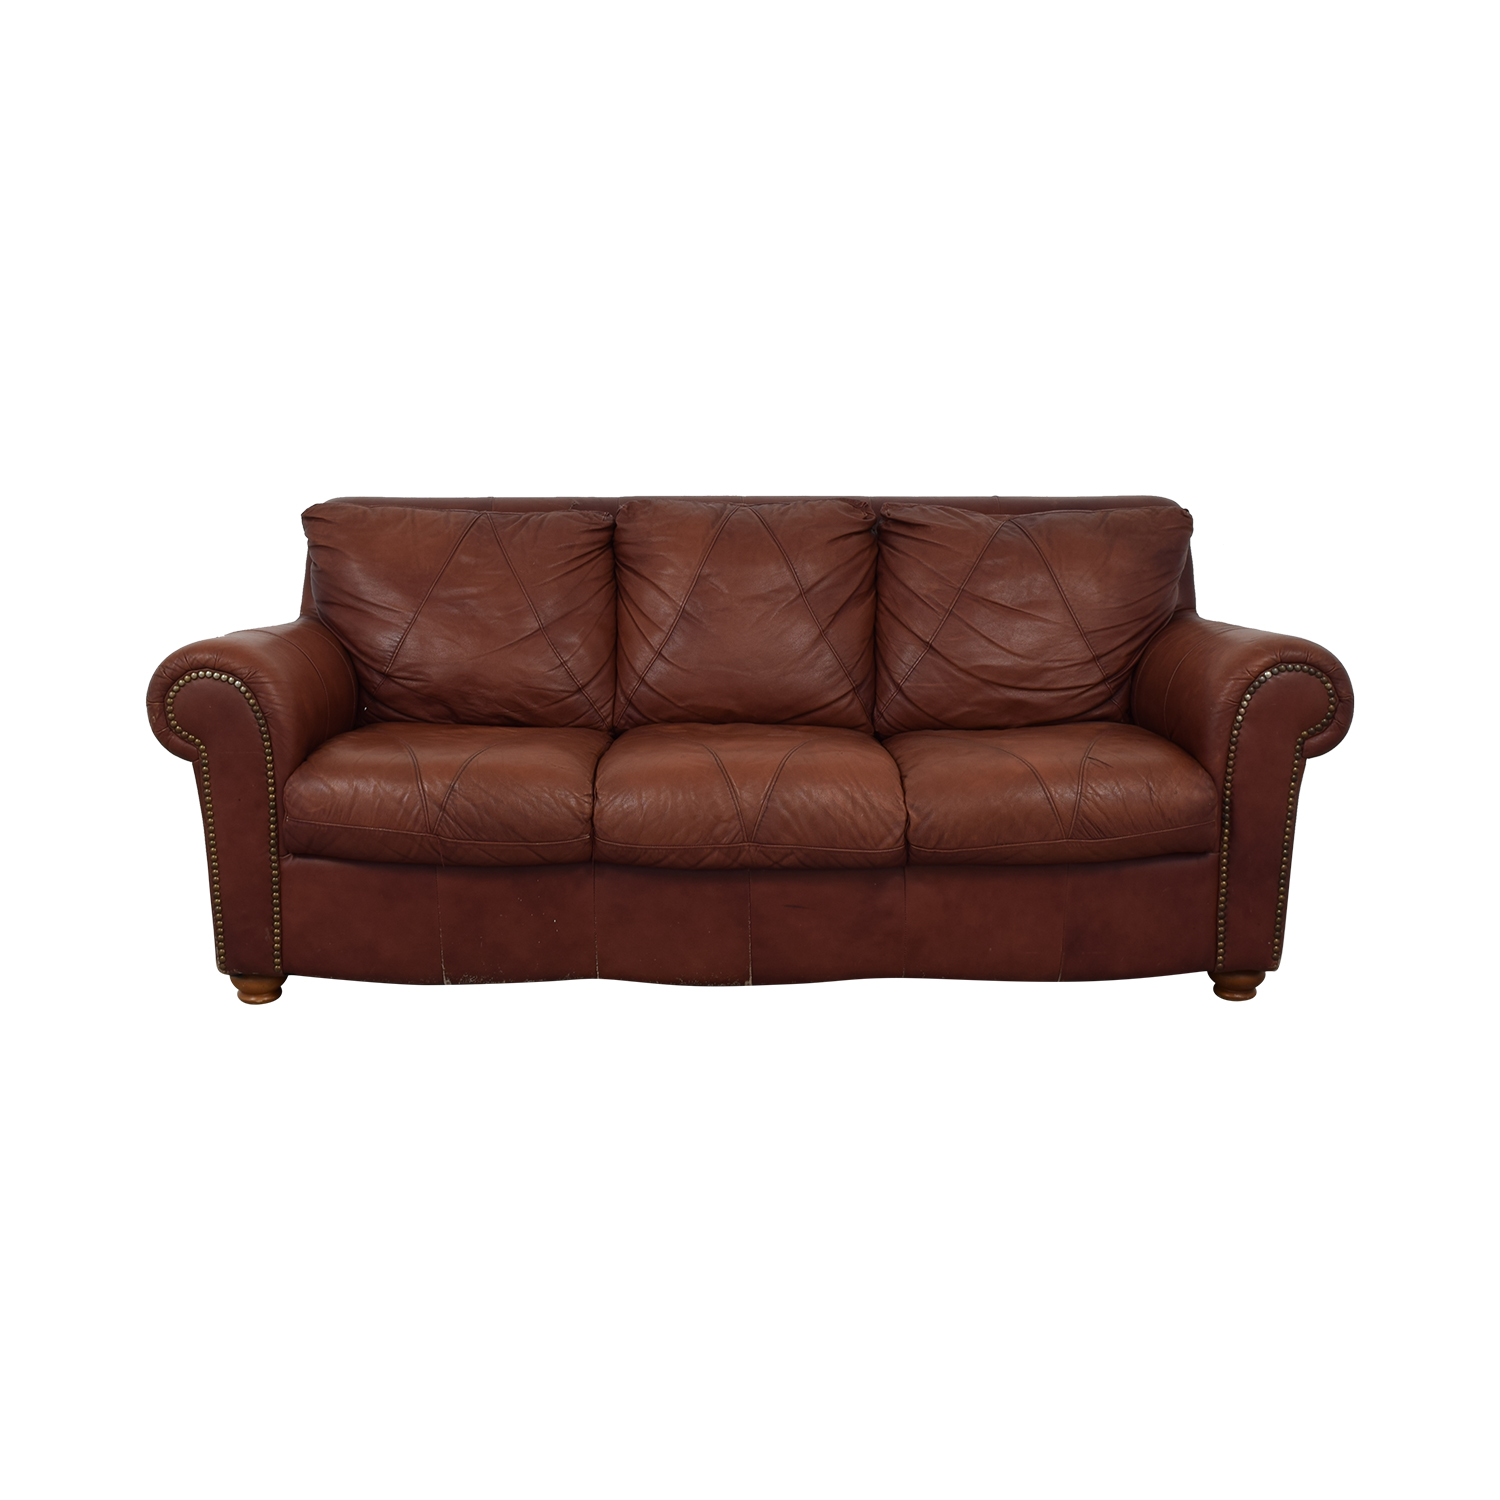 Sofa Leather Workshop: Brown Leather Nailhead Sofa